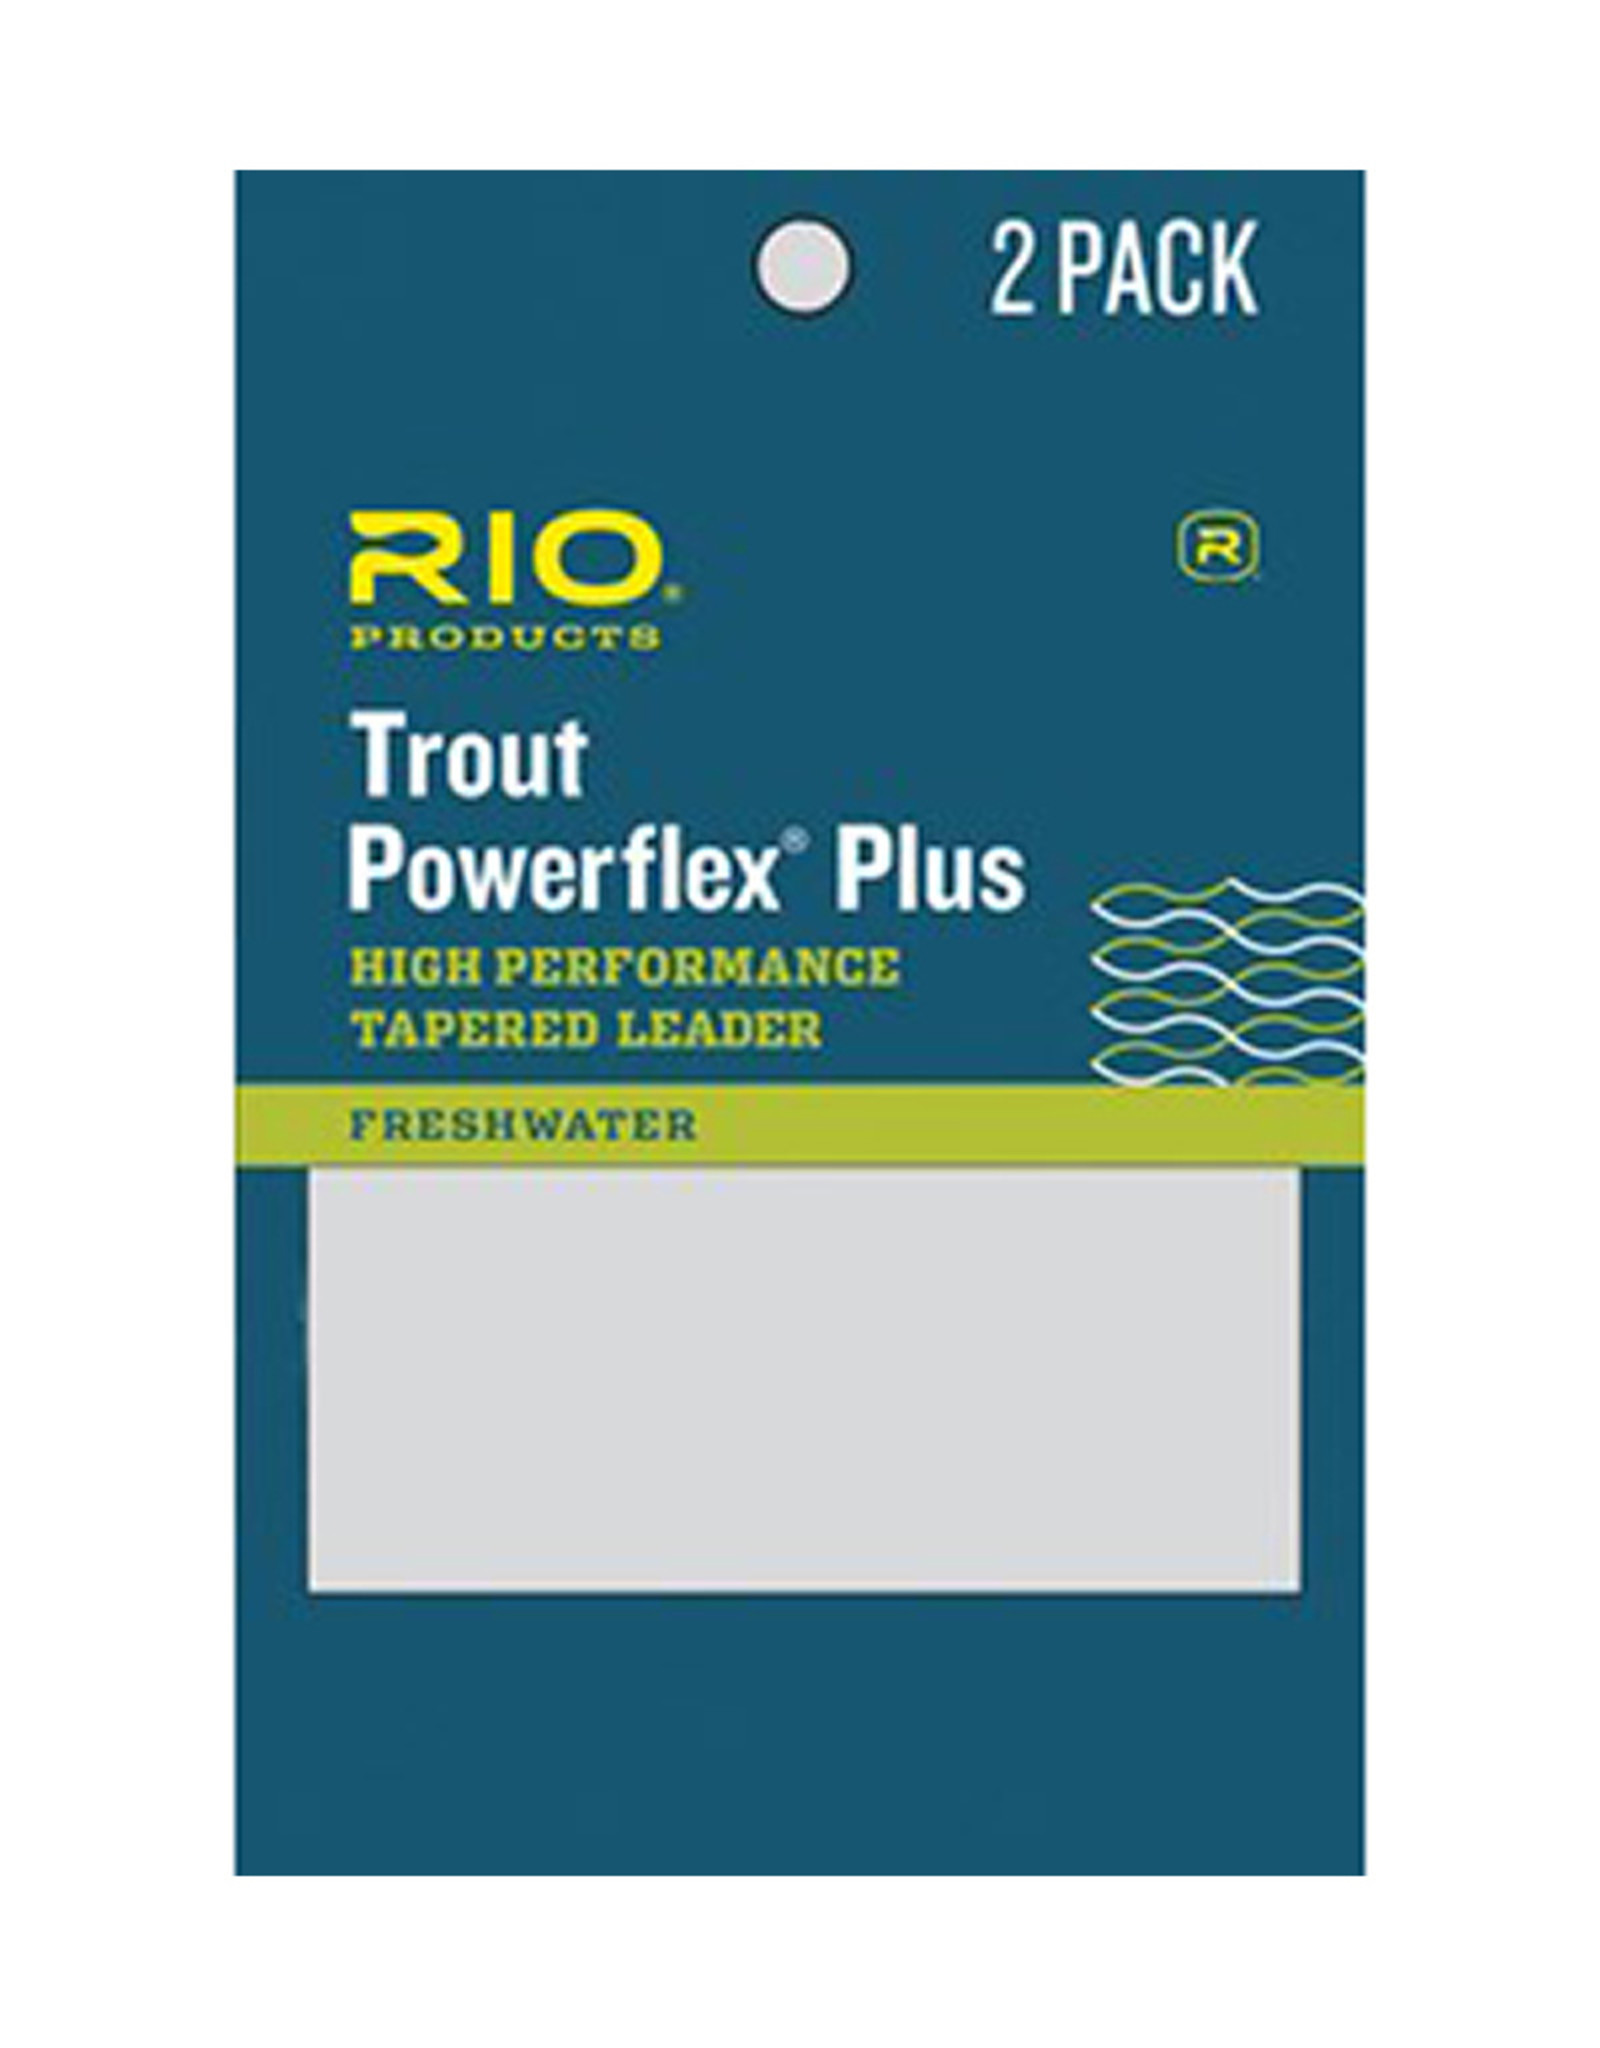 RIO Products Powerflex Plus 12ft Leader: 2 Pack